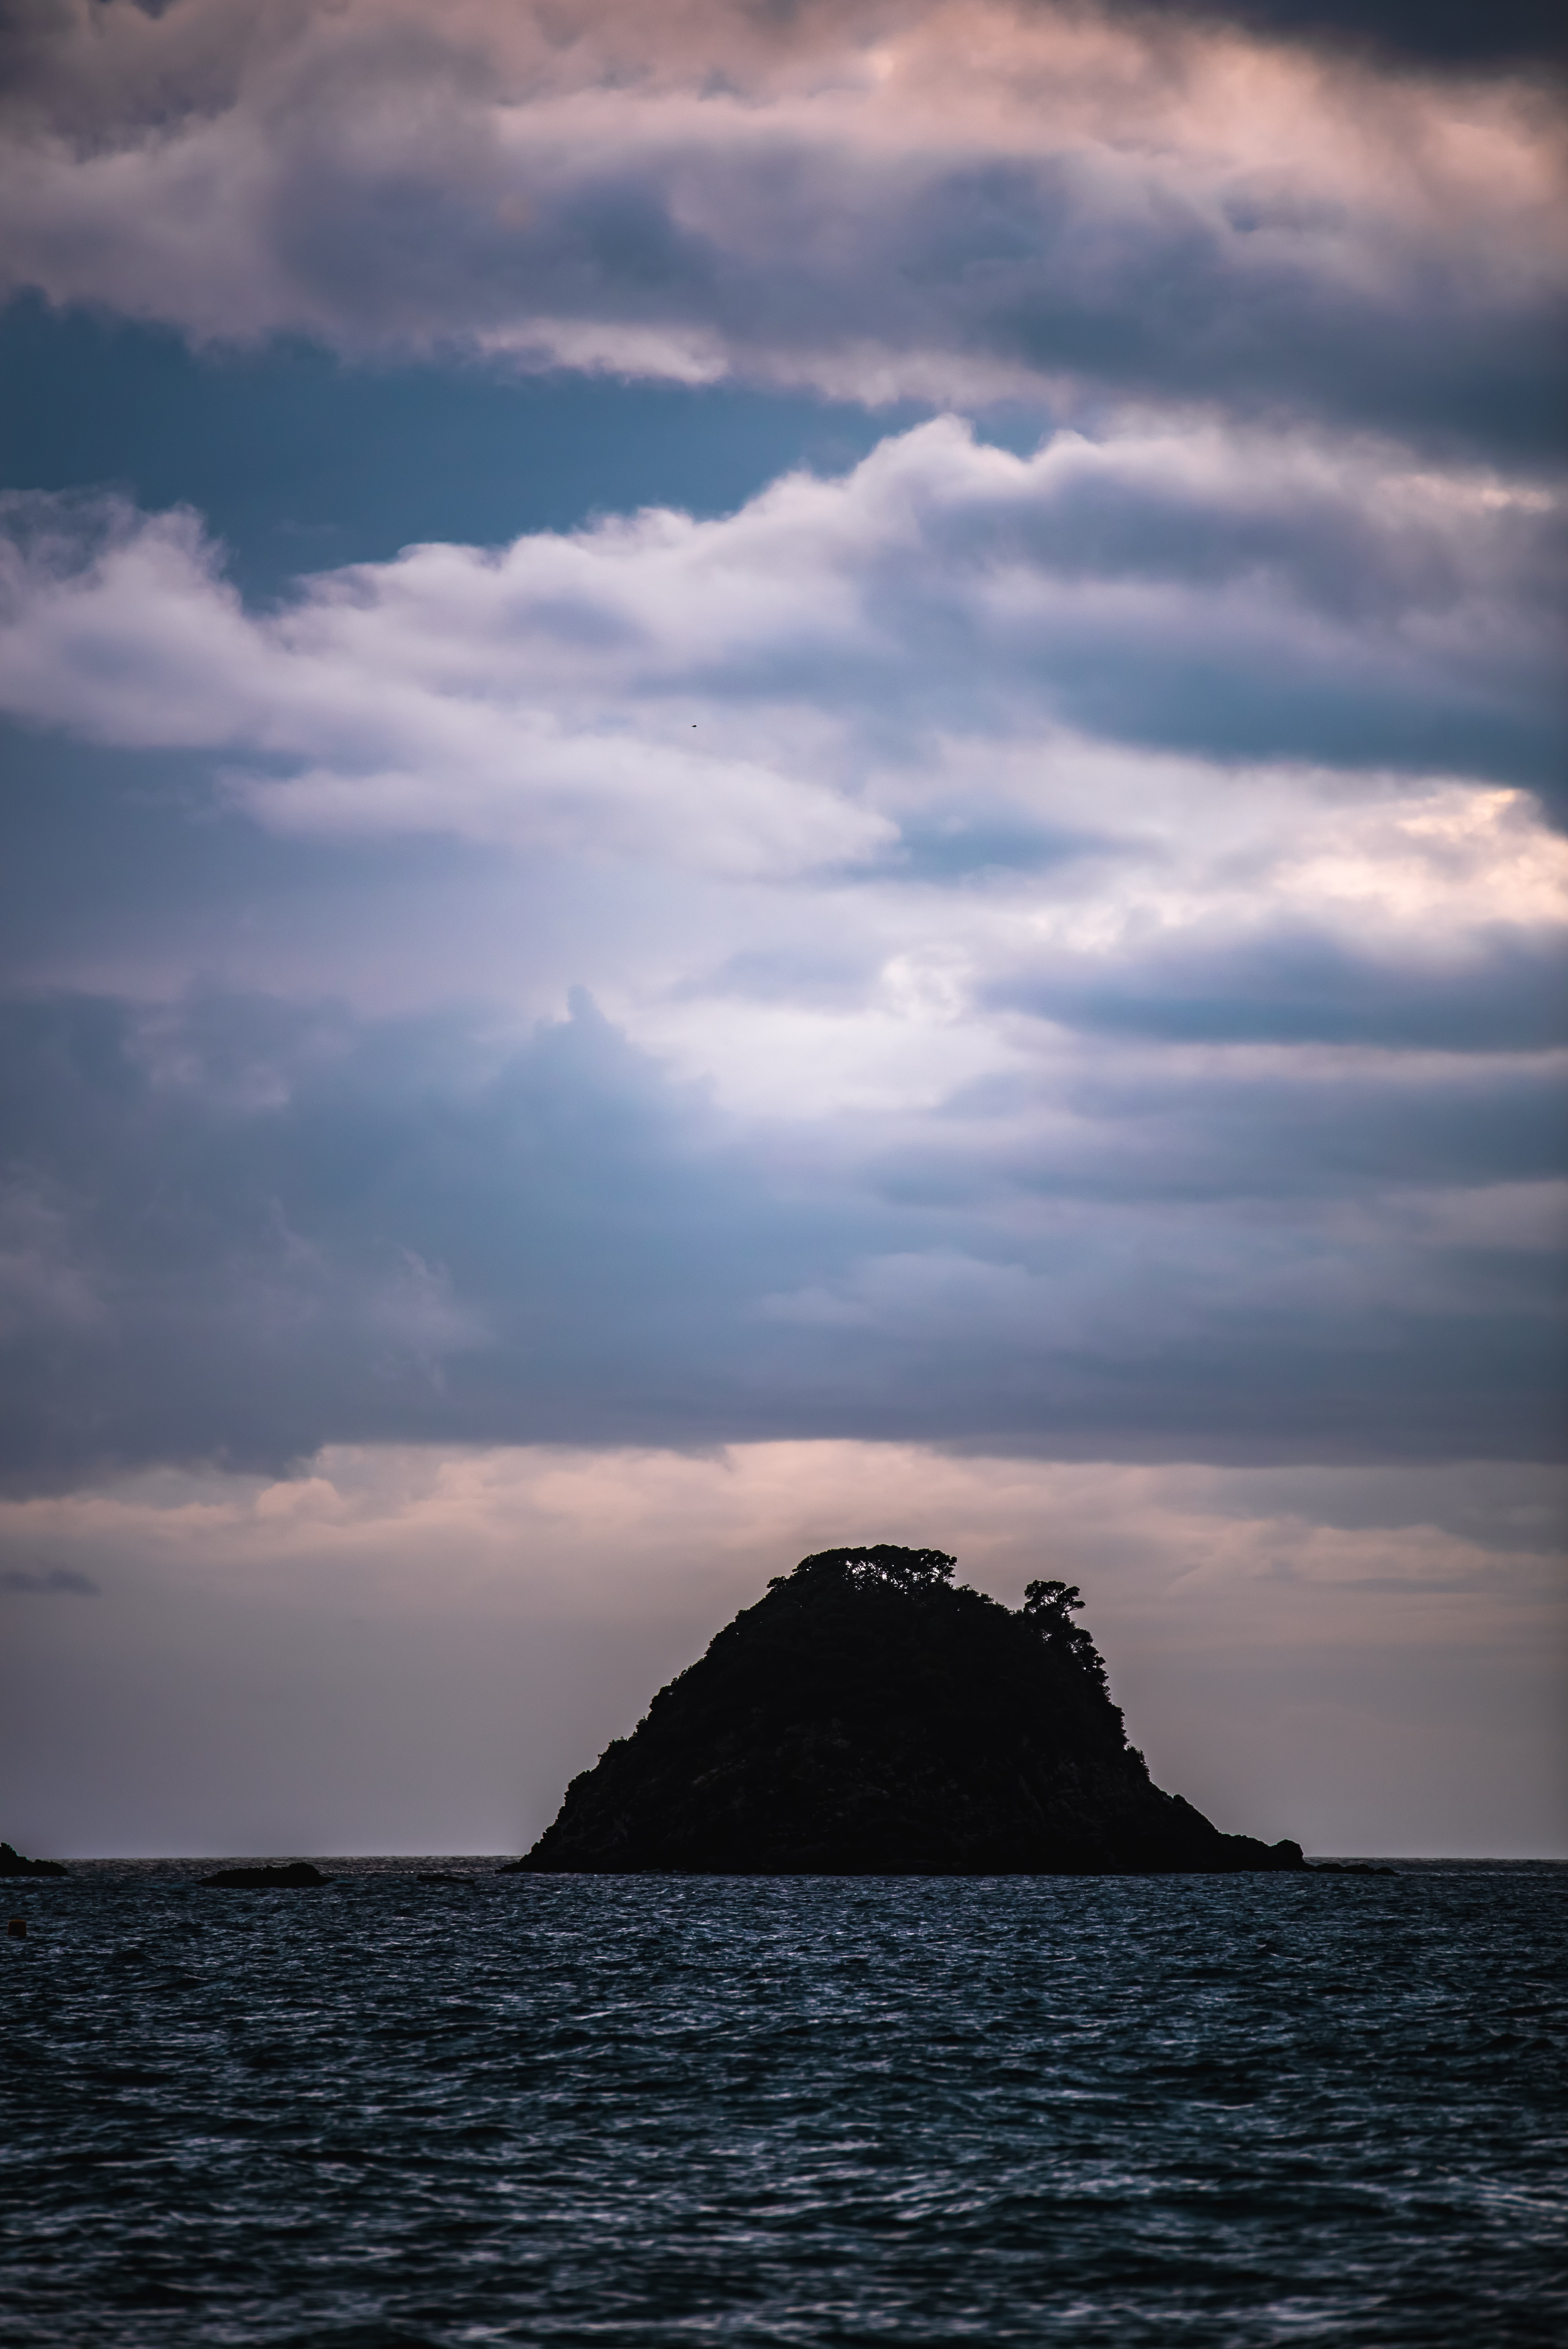 silhouette of island under cloudy sky